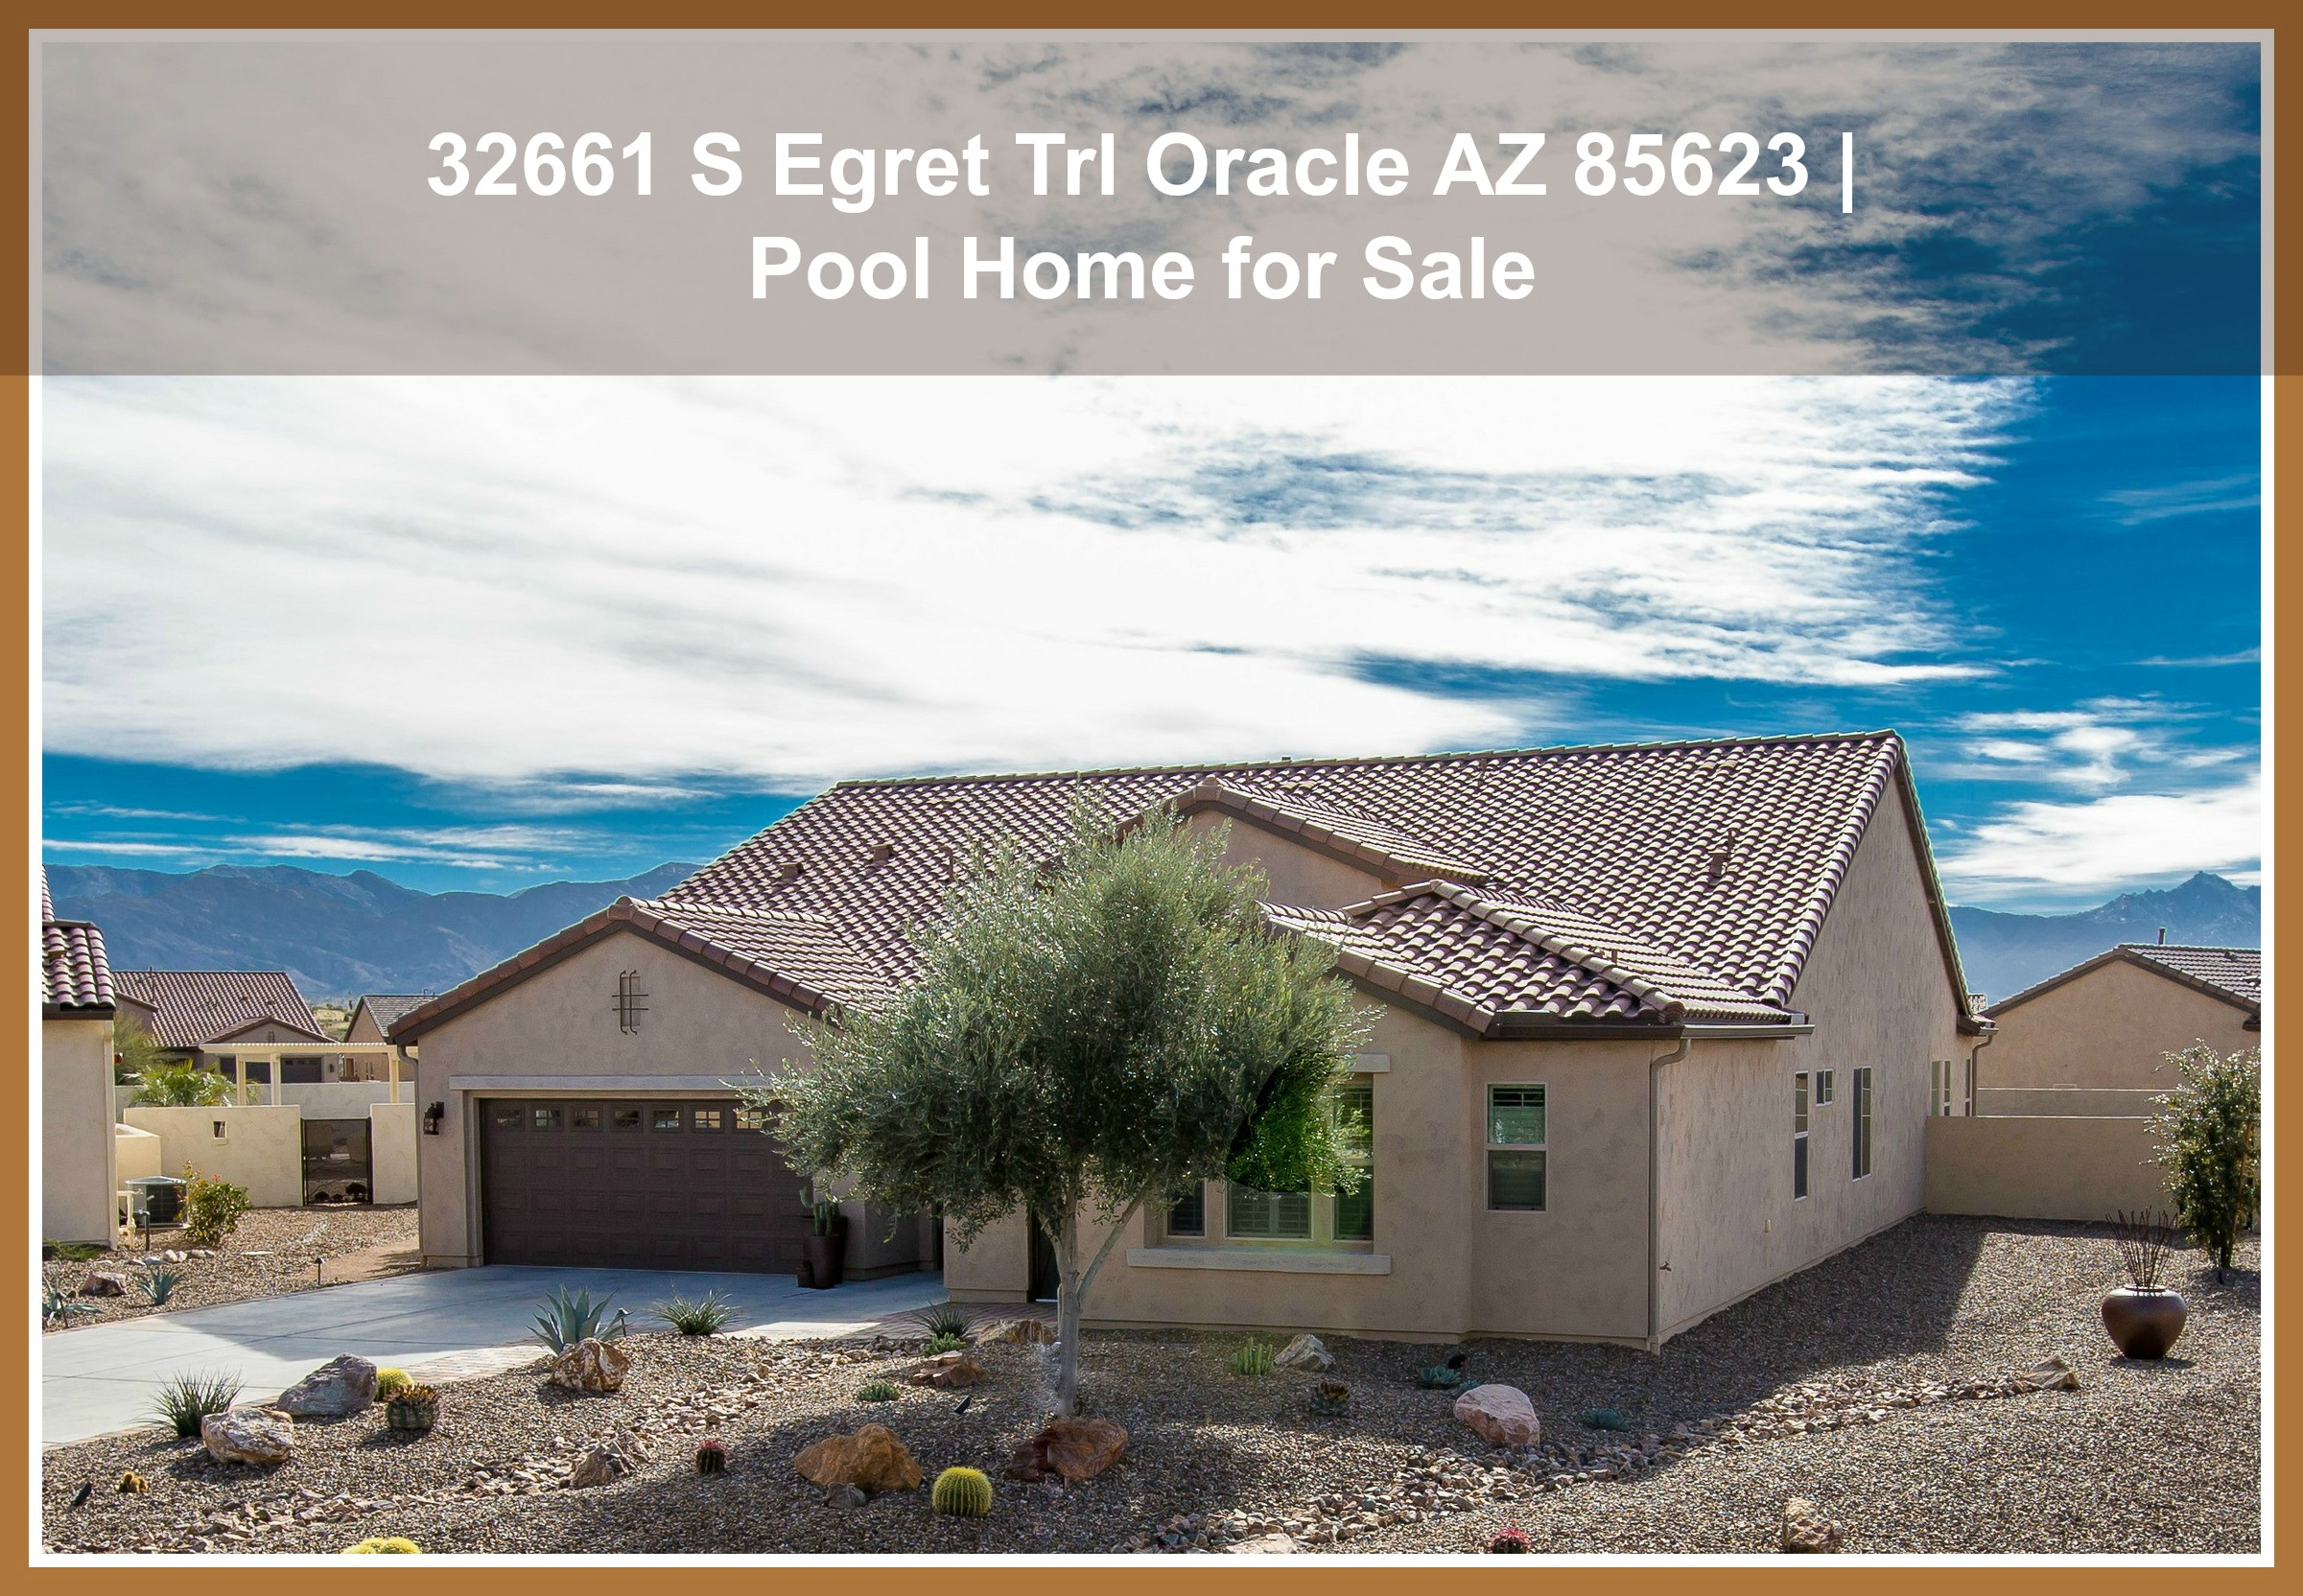 32661 s egret trl oracle az 85623 pool home for sale